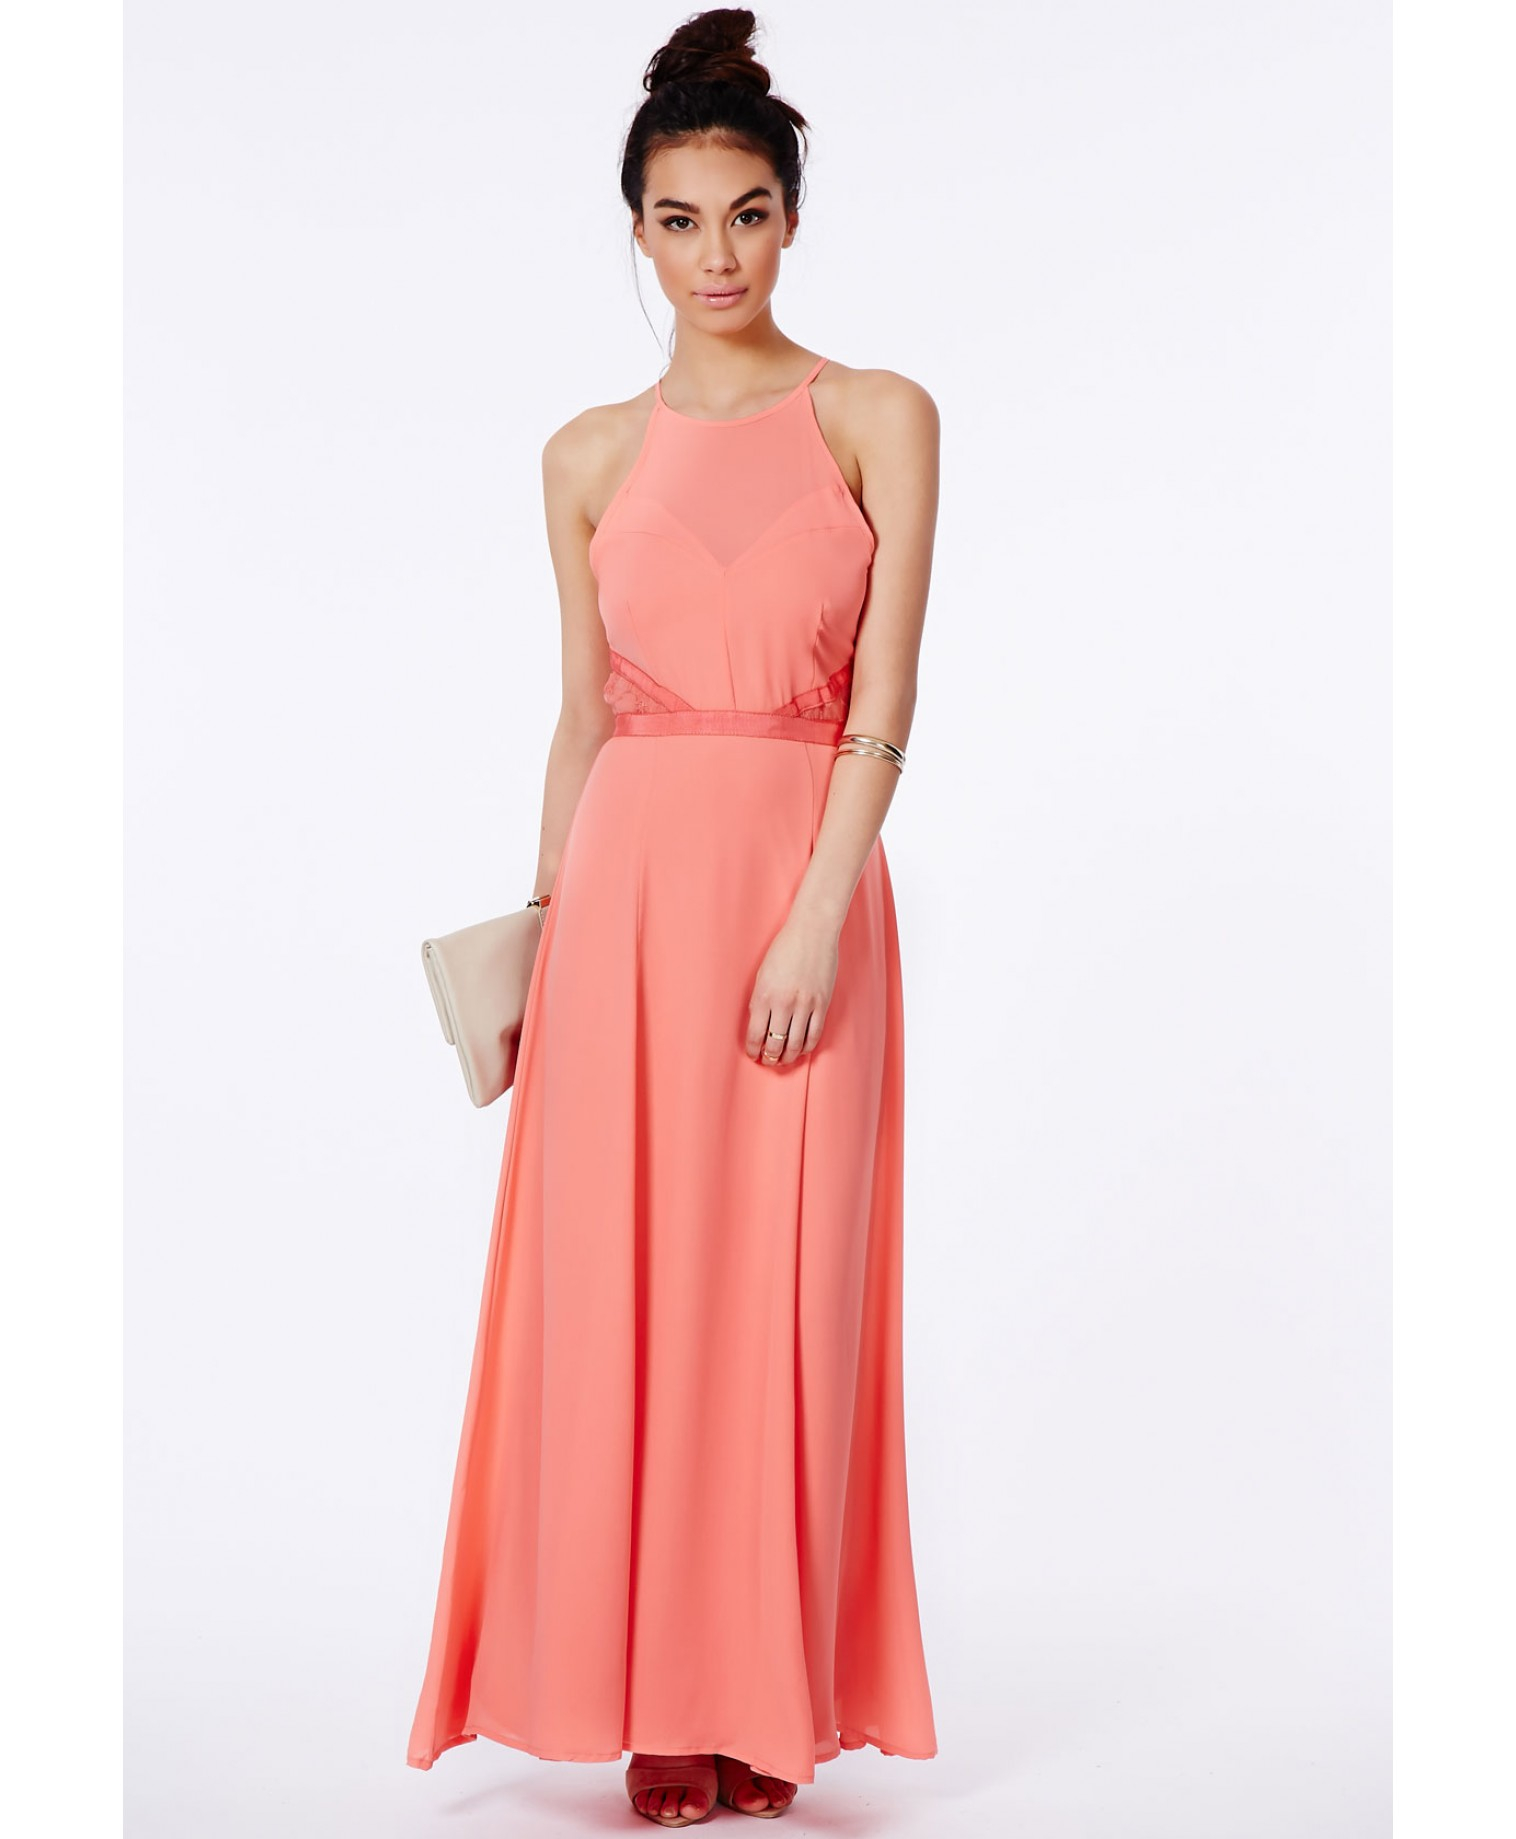 Missguided Kamilinka Lace Backless Maxi Dress In Coral in Red  Lyst